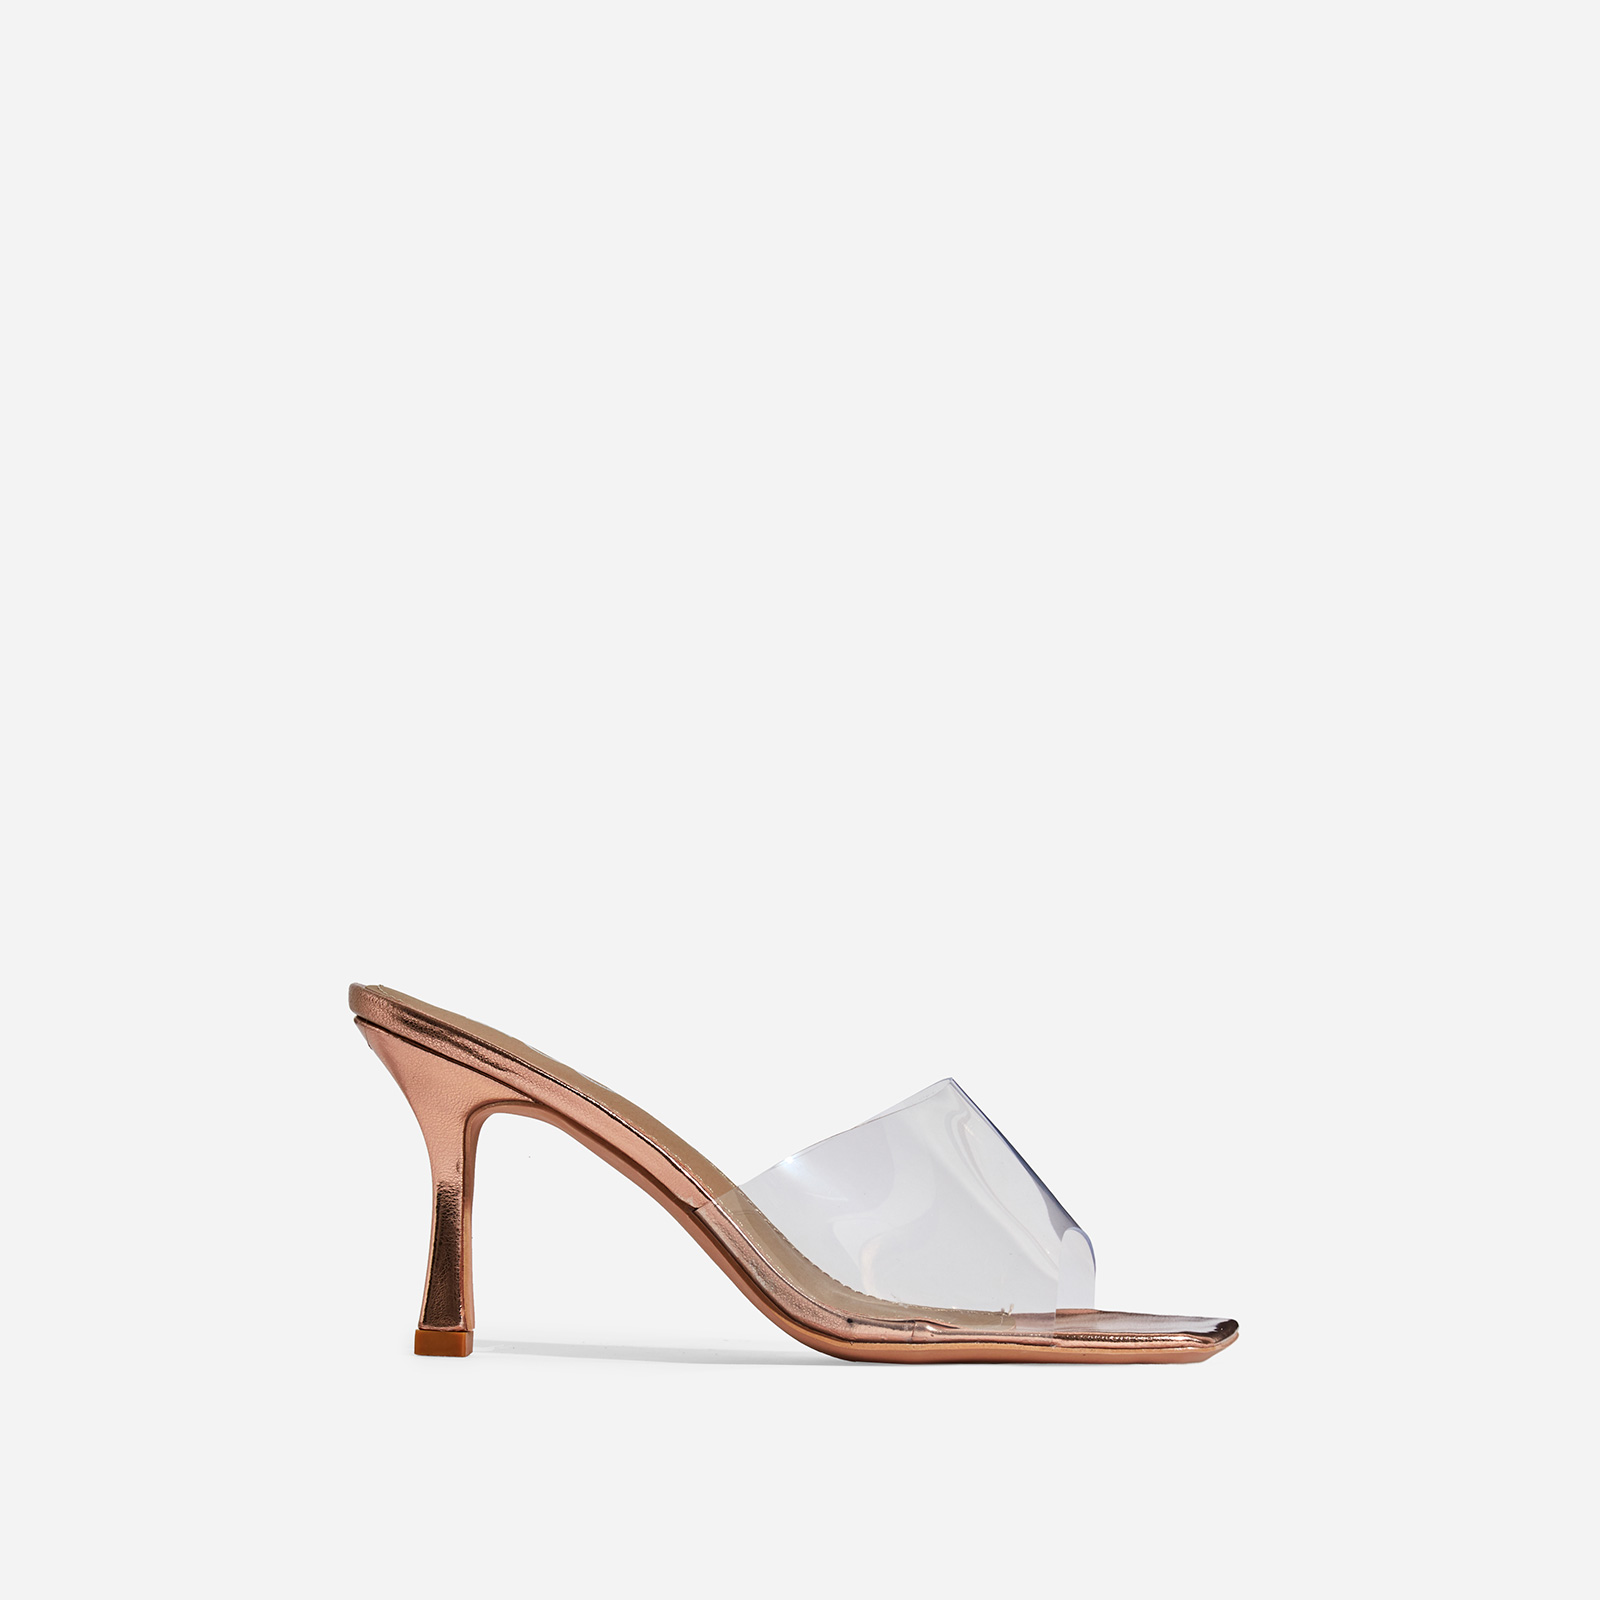 Hilton Square Peep Toe Perspex Kitten Heel Mule In Rose Gold Patent